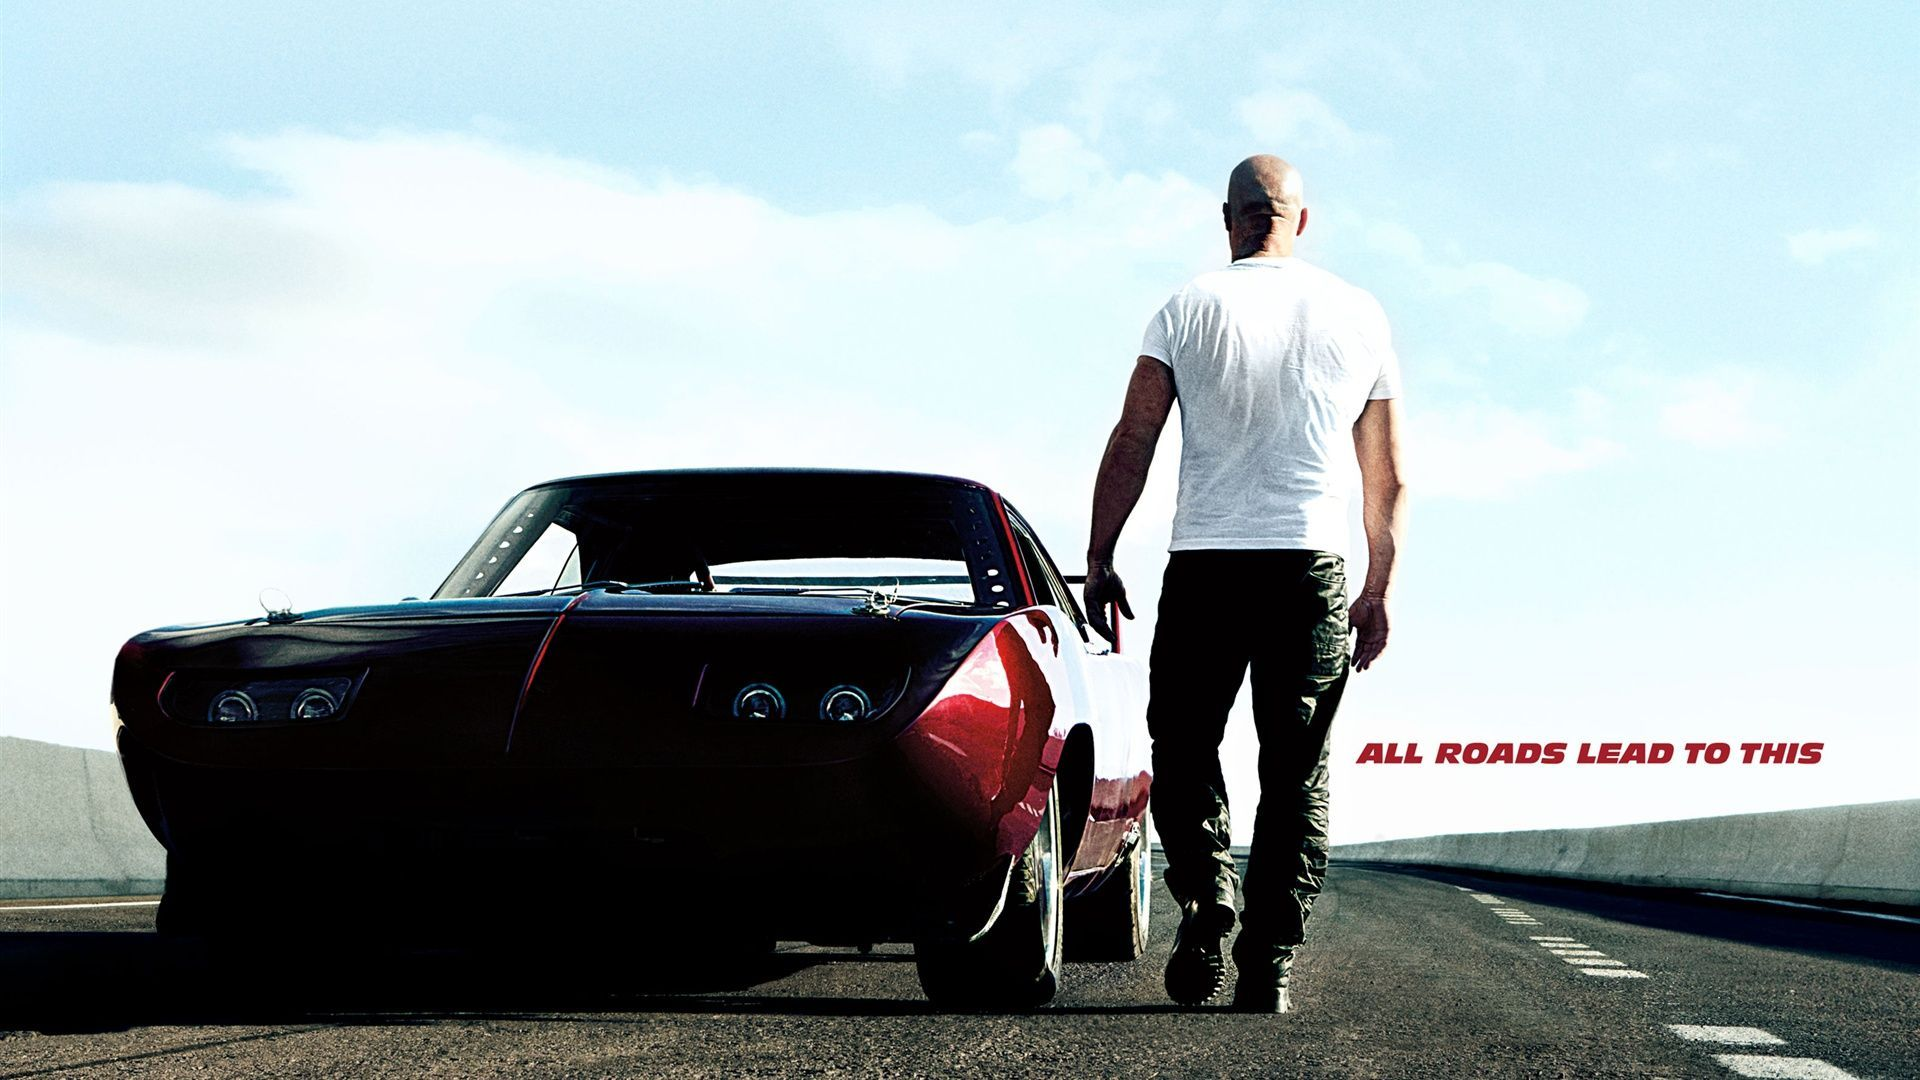 Fast And Furious Desktop Wallpapers Top Free Fast And Furious Desktop Backgrounds Wallpaperaccess